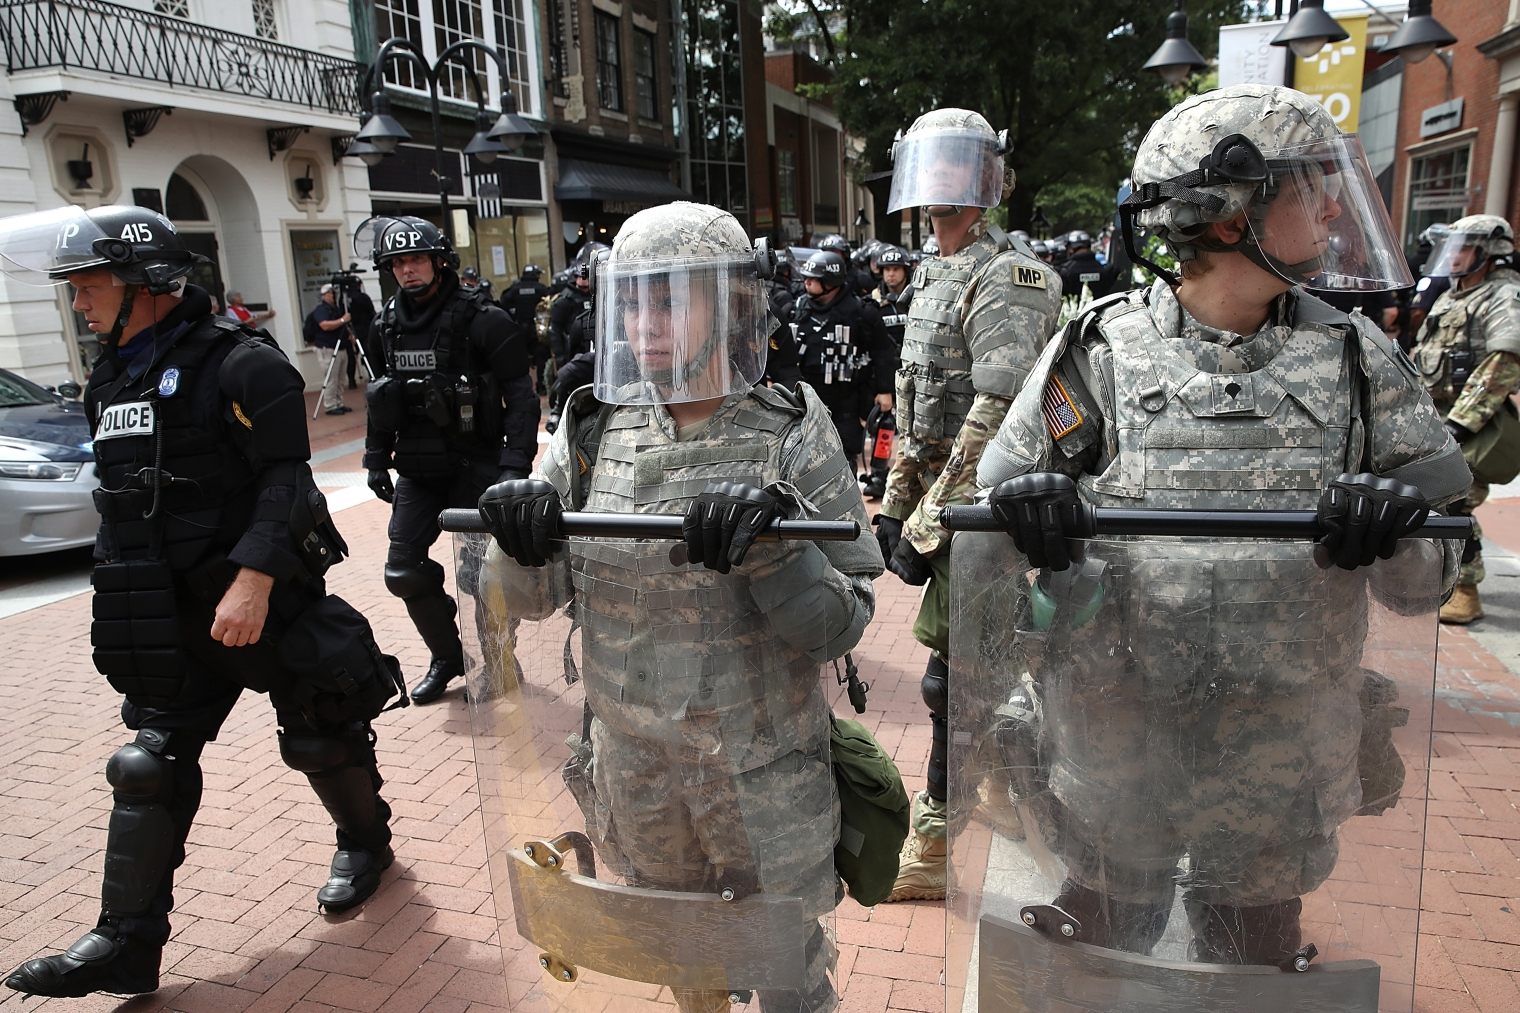 Police and members of the National Guard patrol near the location where a car plowed into a crowd of people marching through a downtown shopping district in Charlottesville, Va., on Aug. 12, 2017.